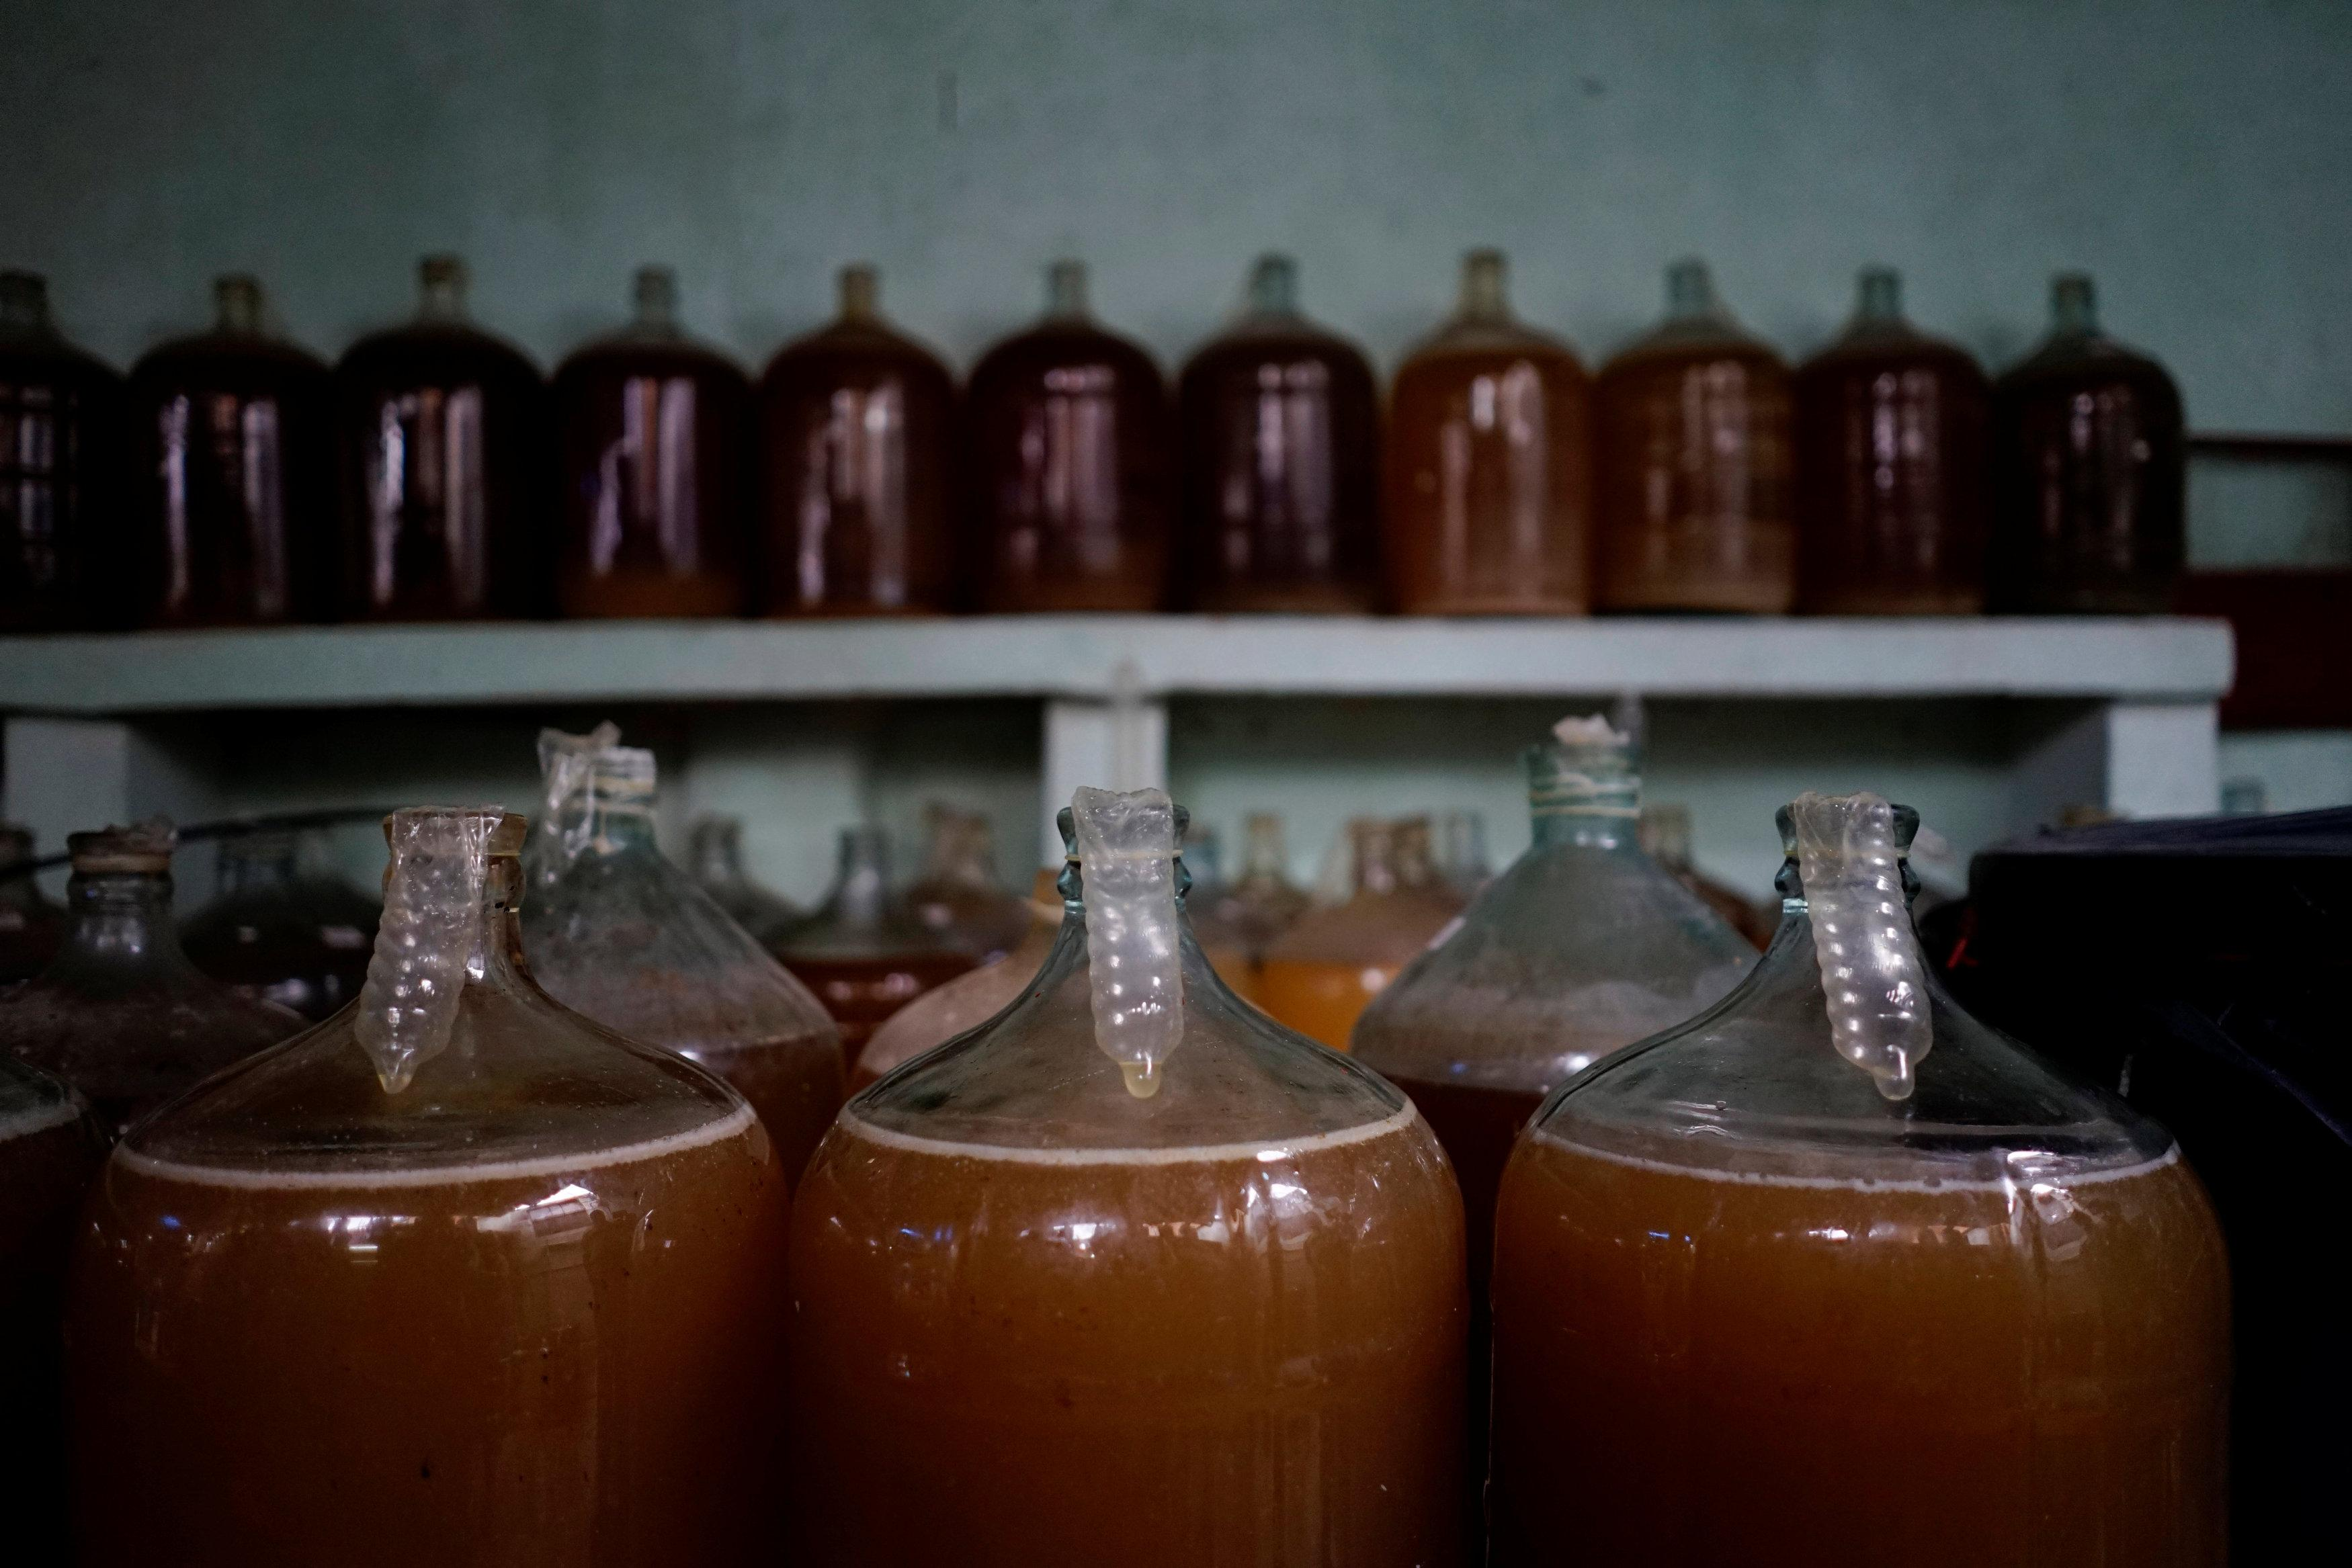 Condoms used in the process of wine production are seen in a makeshift winery in Havana, Cuba, May 16, 2018. Picture taken on May 16, 2018. Alexandre Meneghini